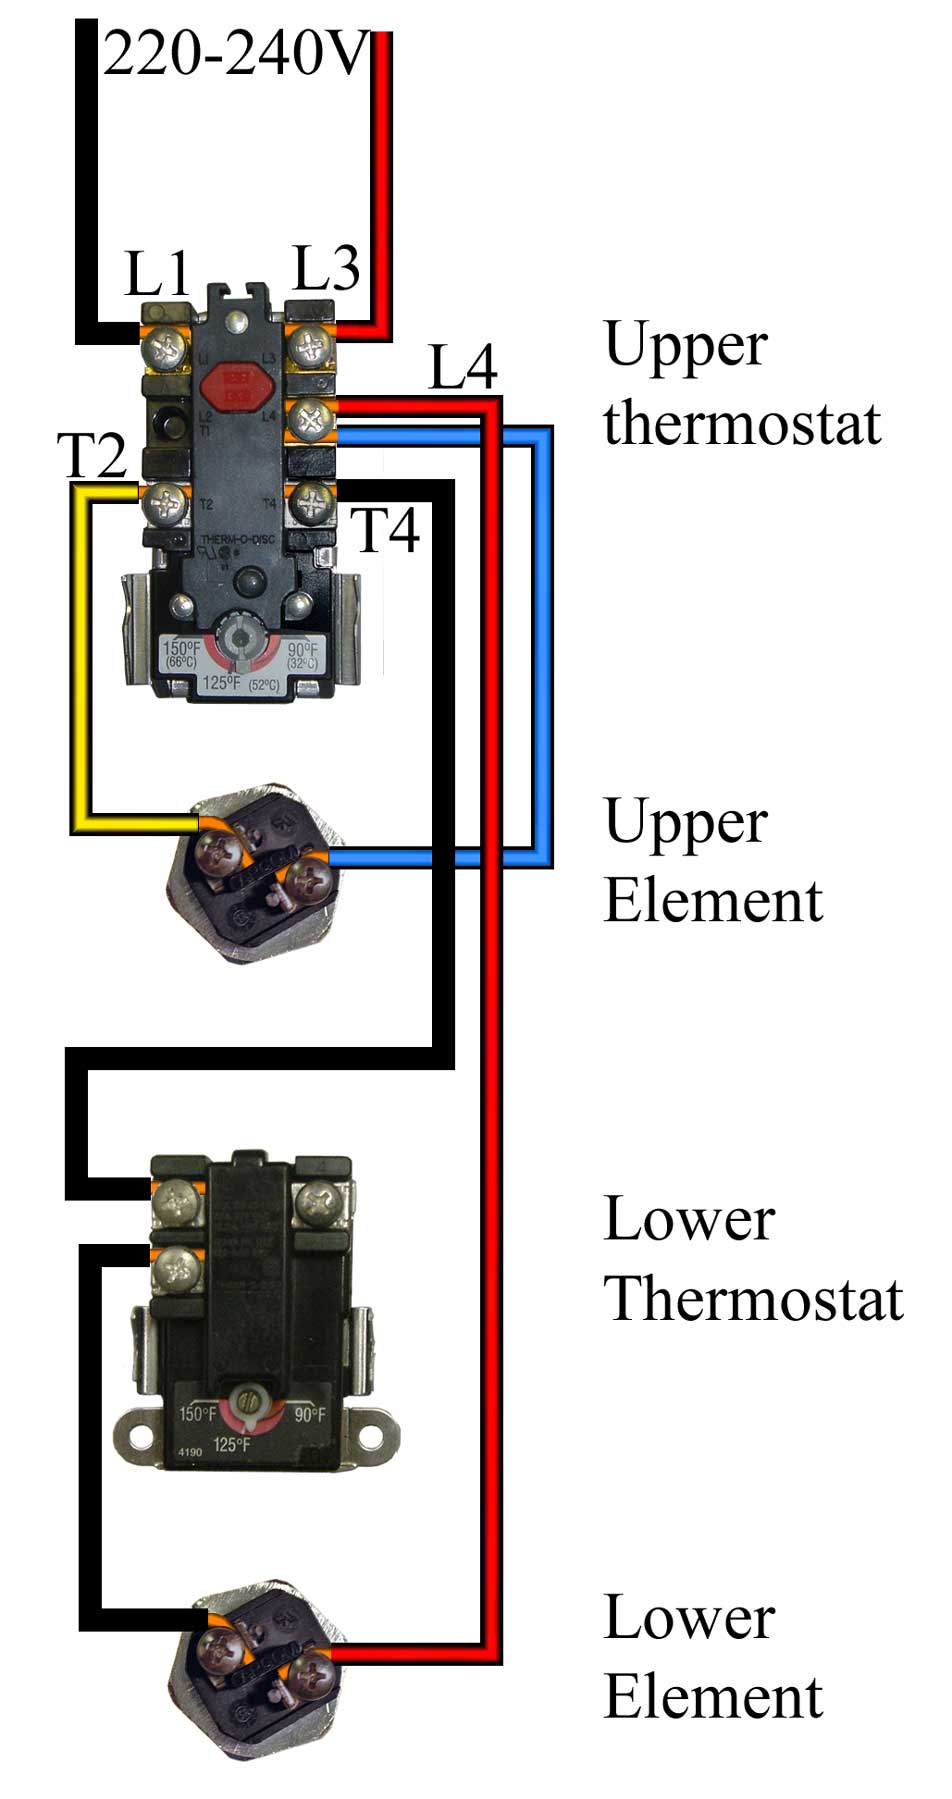 Water heater 240v wiring diagram wiring diagram how to wire water heater for 120 volts rh waterheatertimer org electric water heater thermostat wiring wiring a 240v baseboard heater asfbconference2016 Choice Image